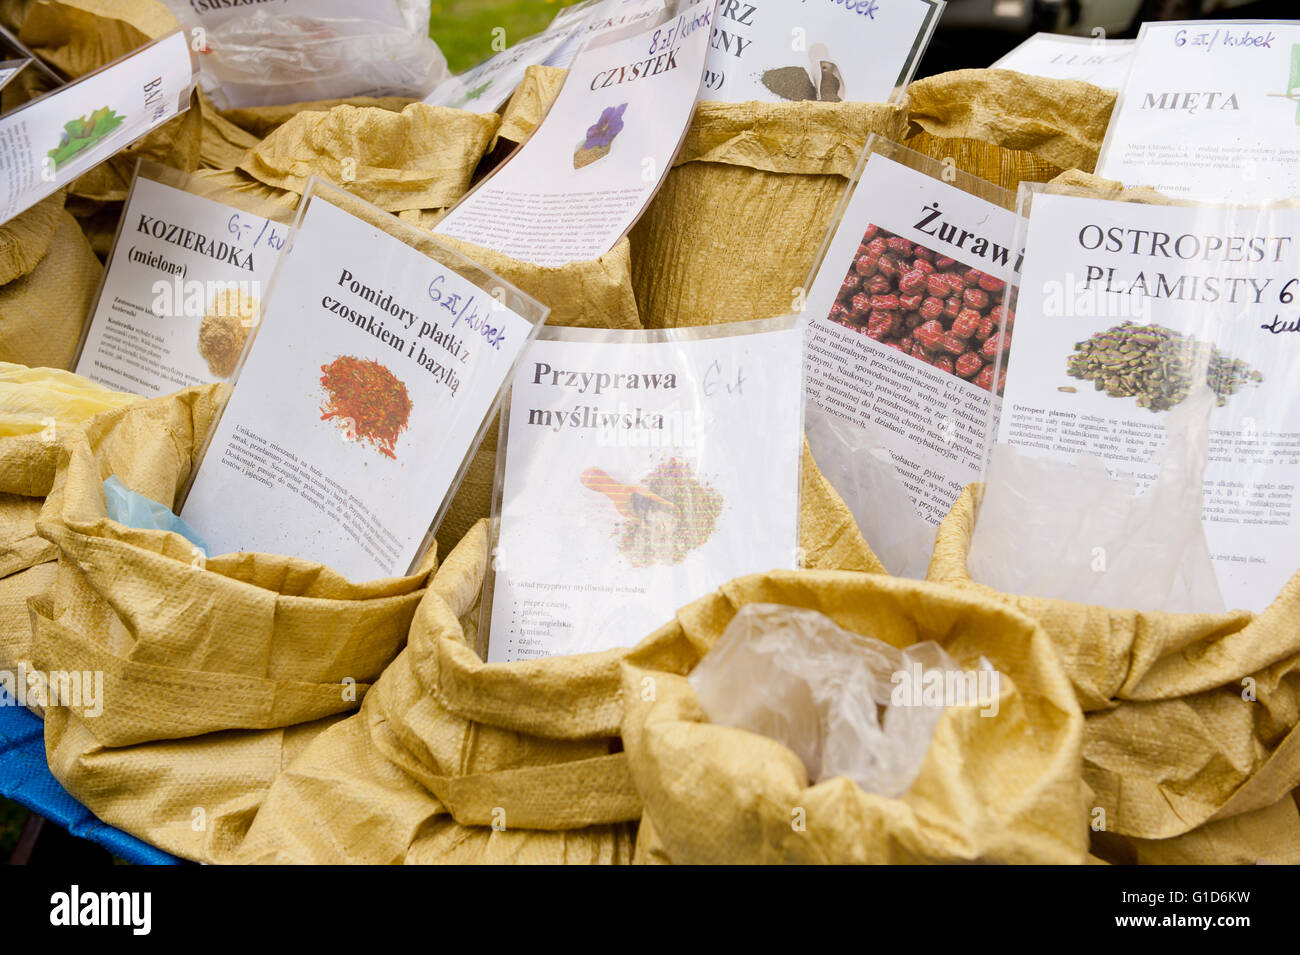 Seasonings in bags at food fair at May day picnic in Janowiec Castle in Poland, Europe, leisure during Swedes invasion - Stock Image